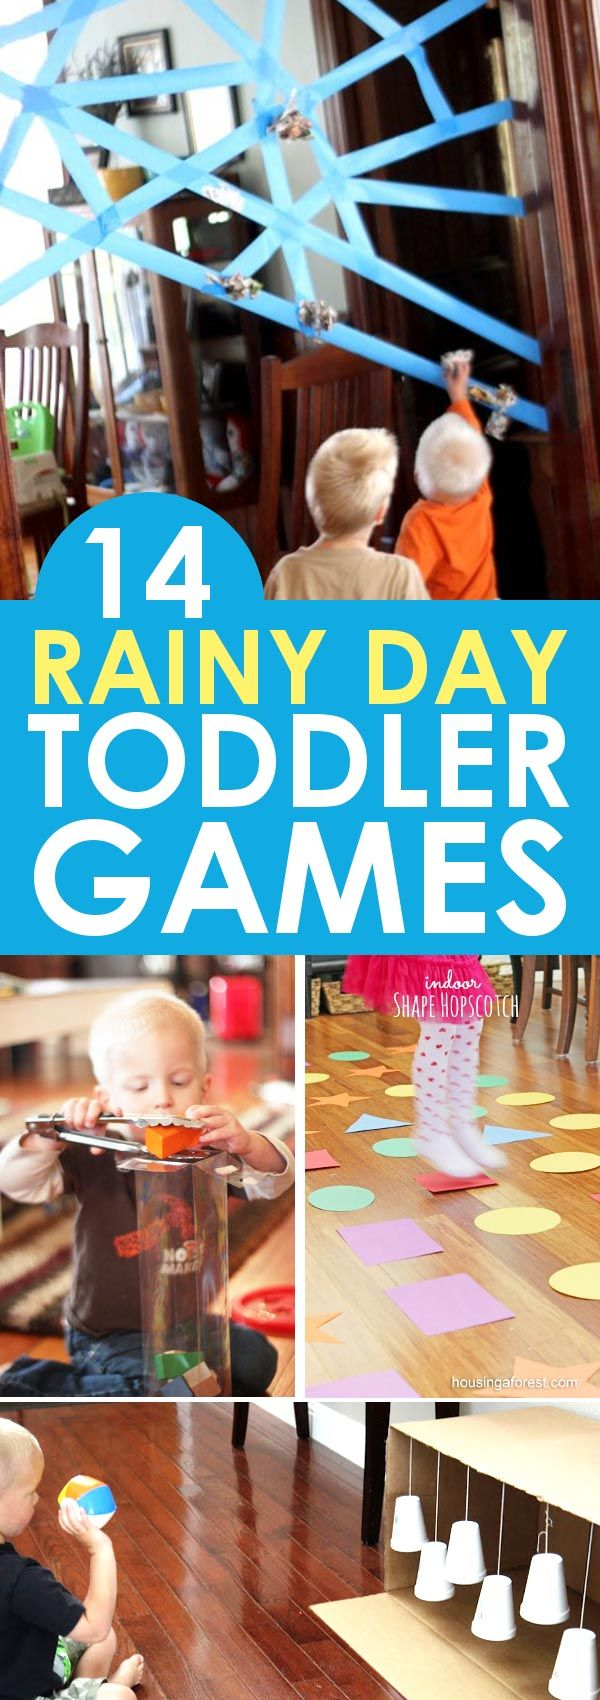 """TODDLER GAMES: Get the details now on 14 indoor toddler games that are perfect for rainy days, cold days, hot days, or just plain """"I need a break"""" days! With these fabulous toddler games available, you'll be ready to entertain your toddler no matter why you need to stay indoors!"""